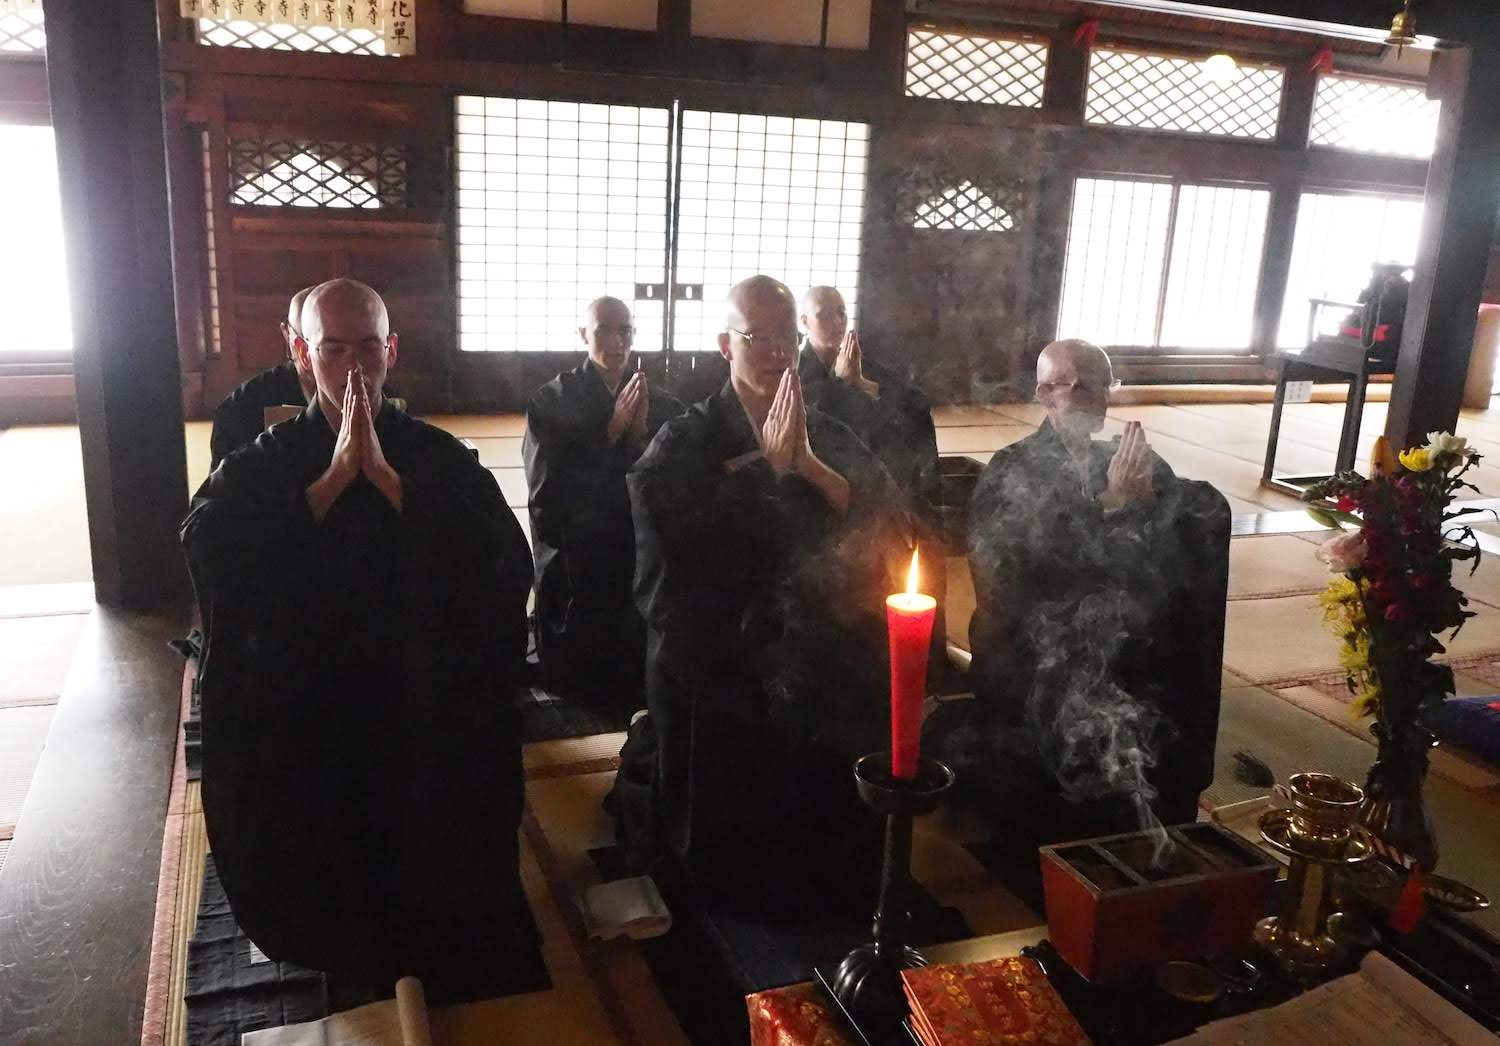 Burning incense before receiving the lineage documents.